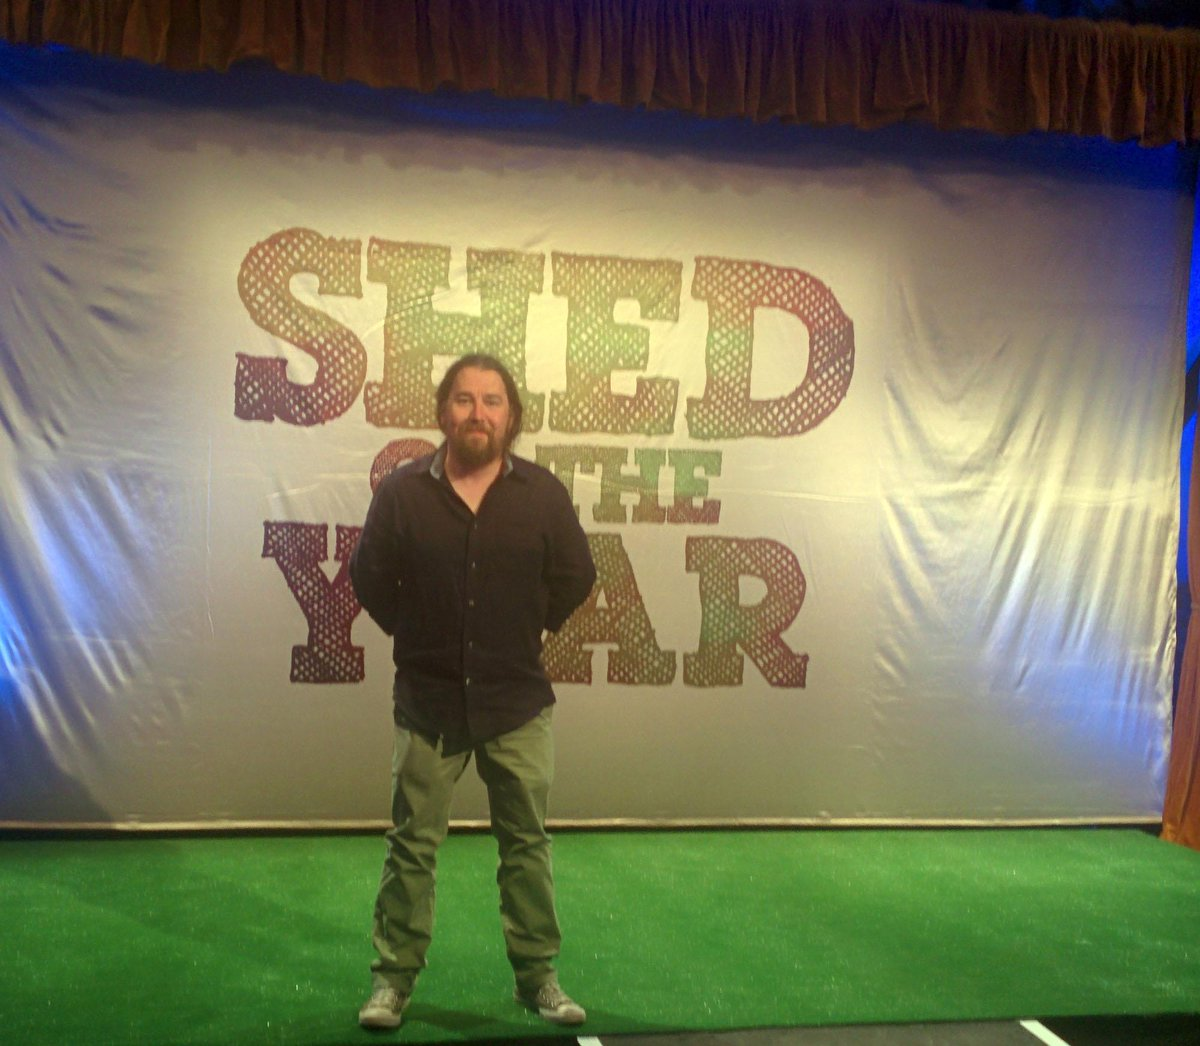 Shed of the Year 2015 will be on @channel4 on Sunday 21st June 8pm #shedoftheyear http://t.co/h3D8vwAKpl http://t.co/tpb3gmNw5l